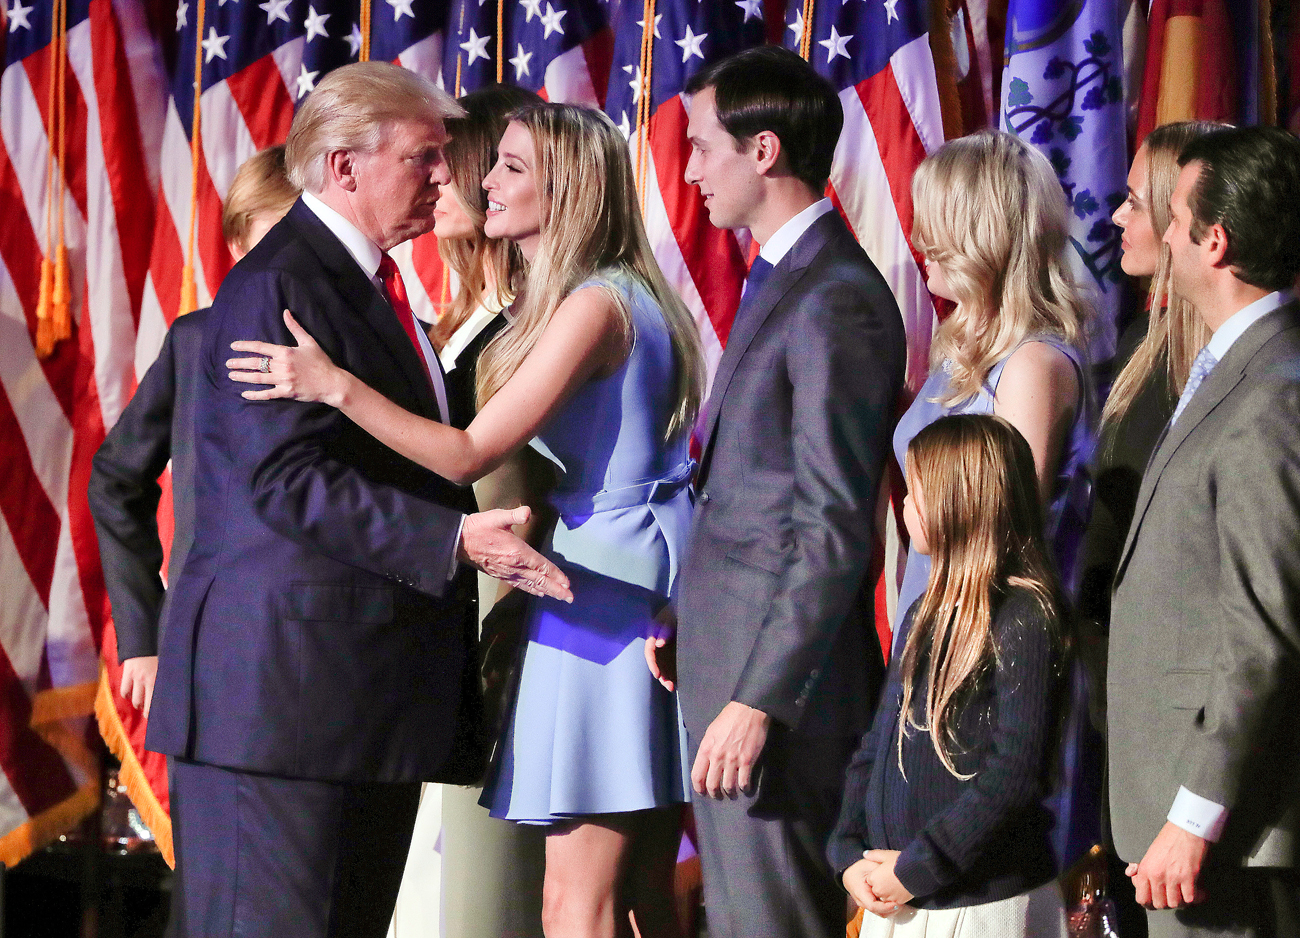 President elect Donald Trump (L) greets his daughter, Ivanka Trump, after giving his acceptance speech at an election night rally. Ivanka's husband Jared Kushner stands right next to her.